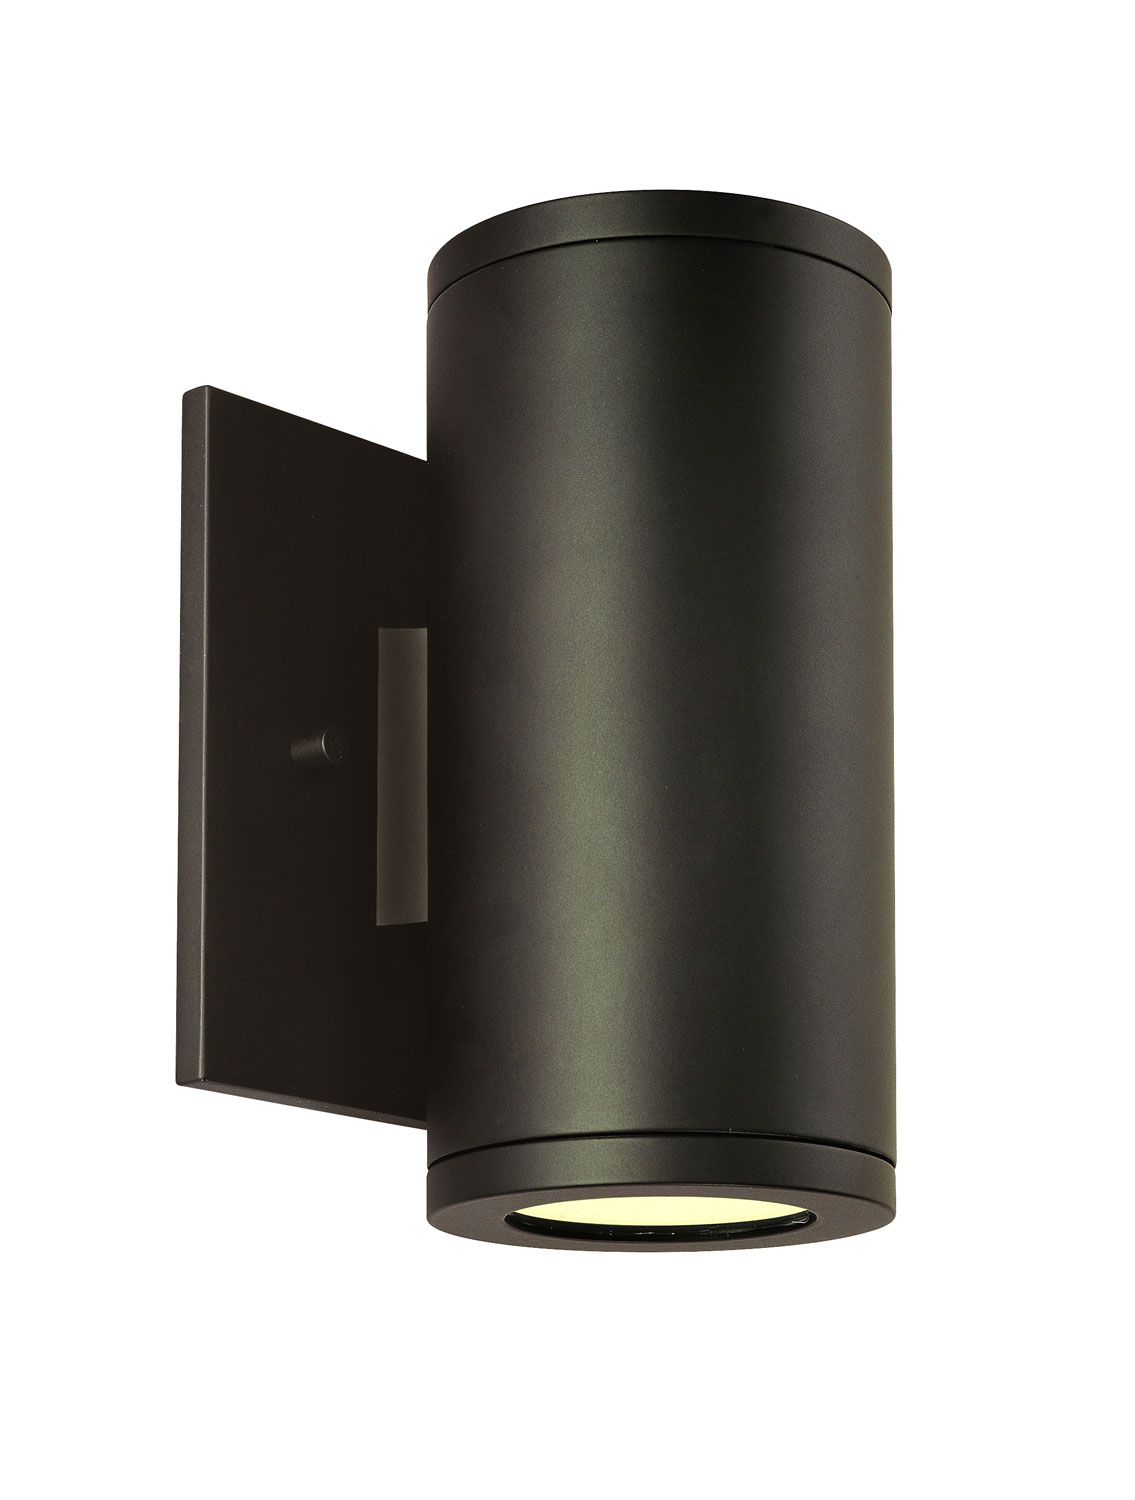 Exterior Lighting: TOP 10 Wall Mounted Exterior Light Fixtures 2019